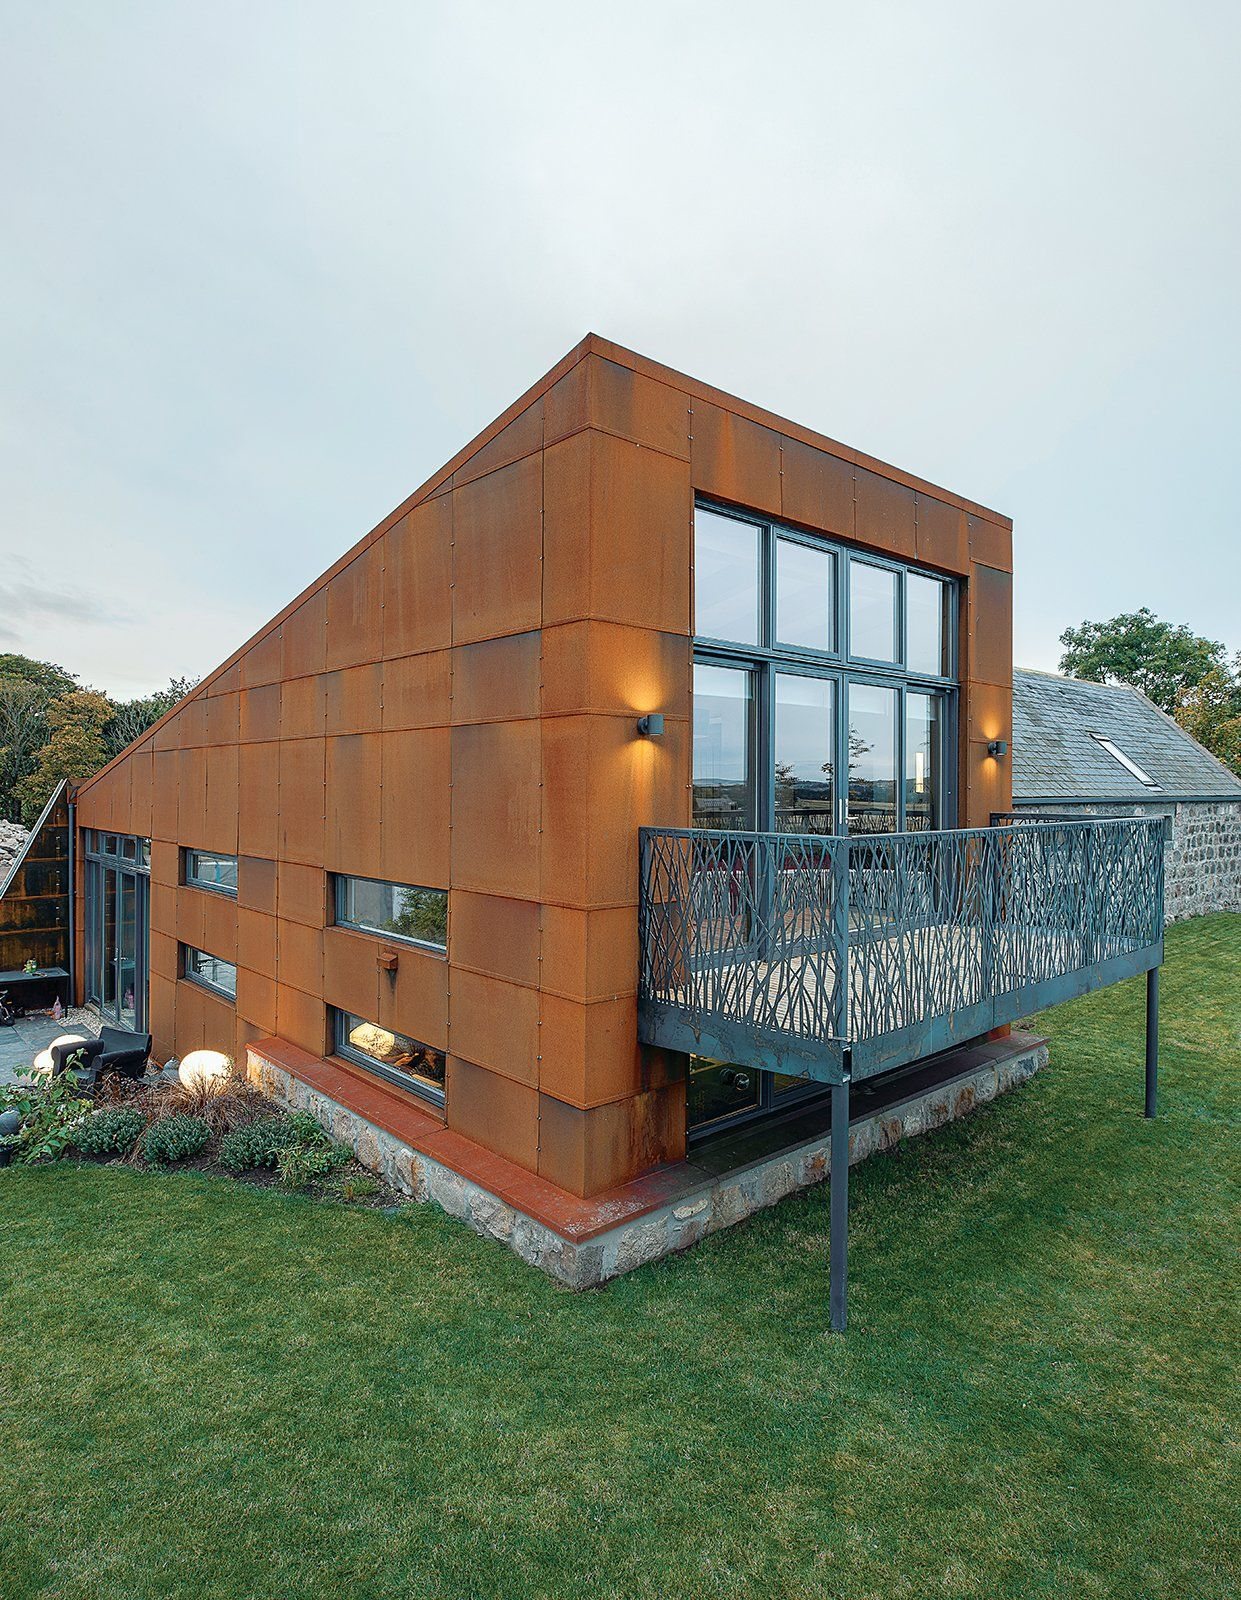 Knorr rentals ennis cloudiasouvenir - Affordable Kansas City Home Steel Facade With Cypress Cladding Architecture Small Pinterest Facades Steel And Architecture